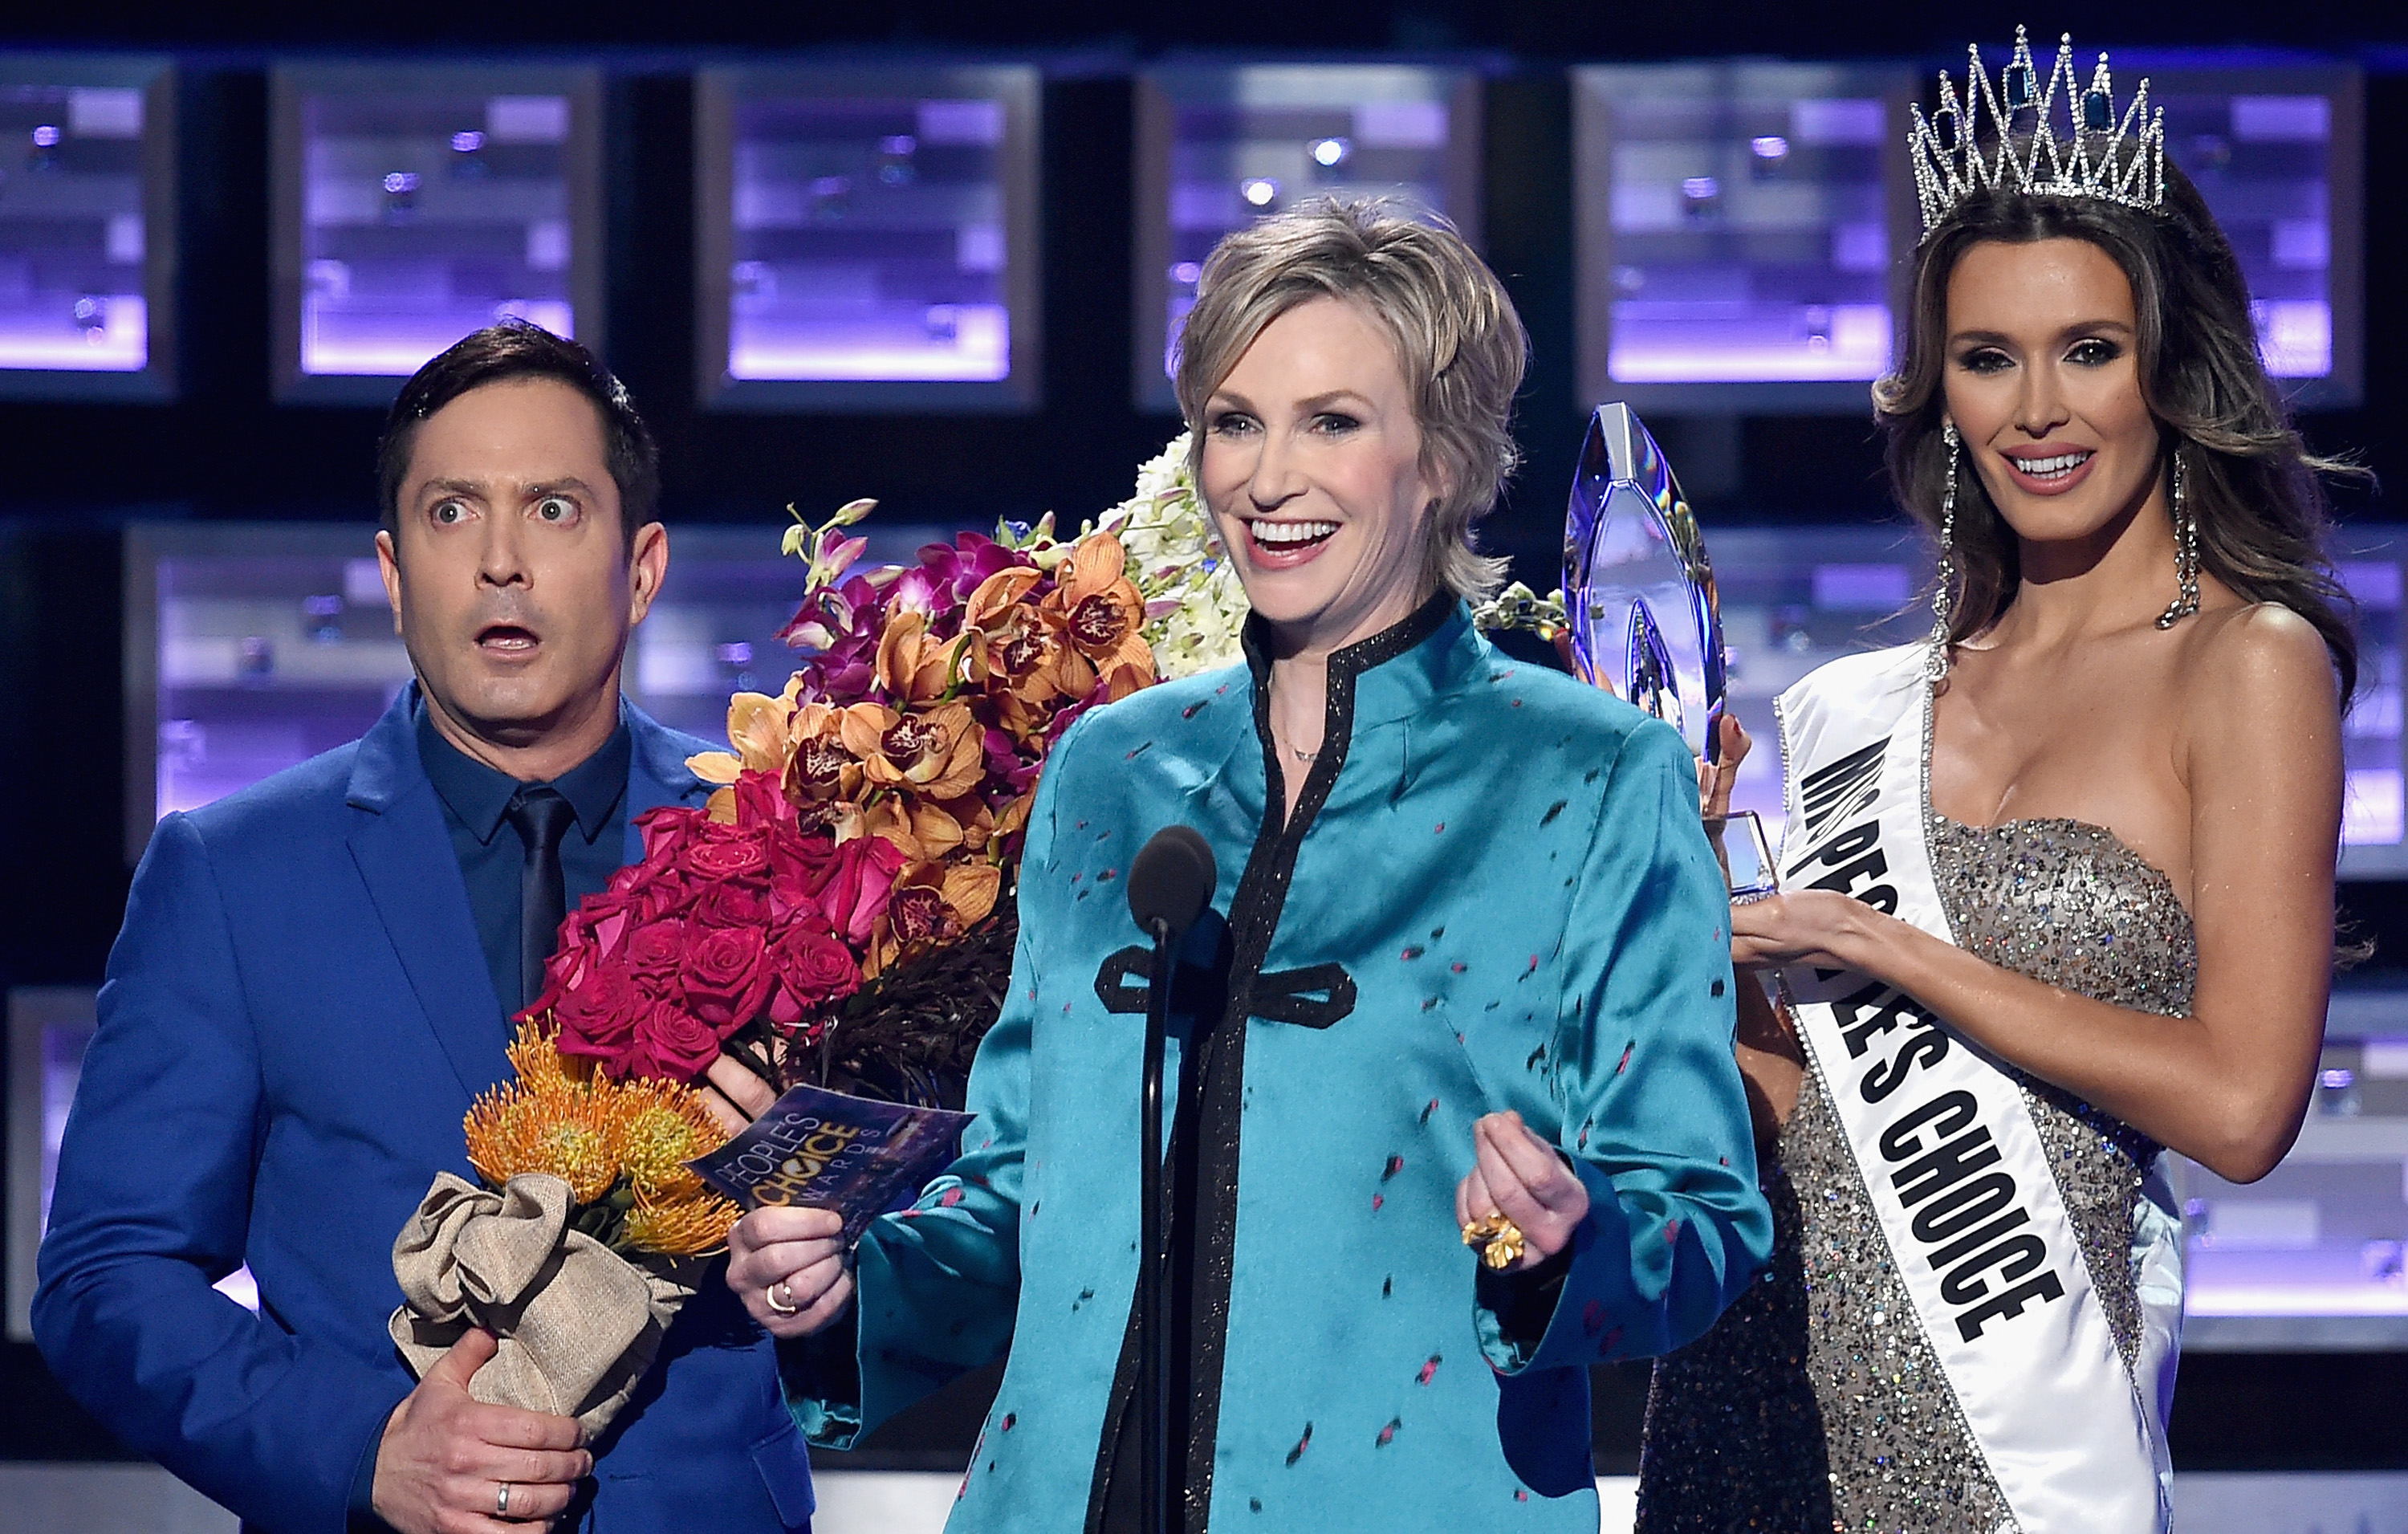 LOS ANGELES, CA - JANUARY 06: (L-R) Actor Thomas Lennon, host Jane Lynch, and Miss Colombia Ariadna Gutierrez perform onstage during the People's Choice Awards 2016 at Microsoft Theater on January 6, 2016 in Los Angeles, California. Kevin Winter/Getty Images/AFP